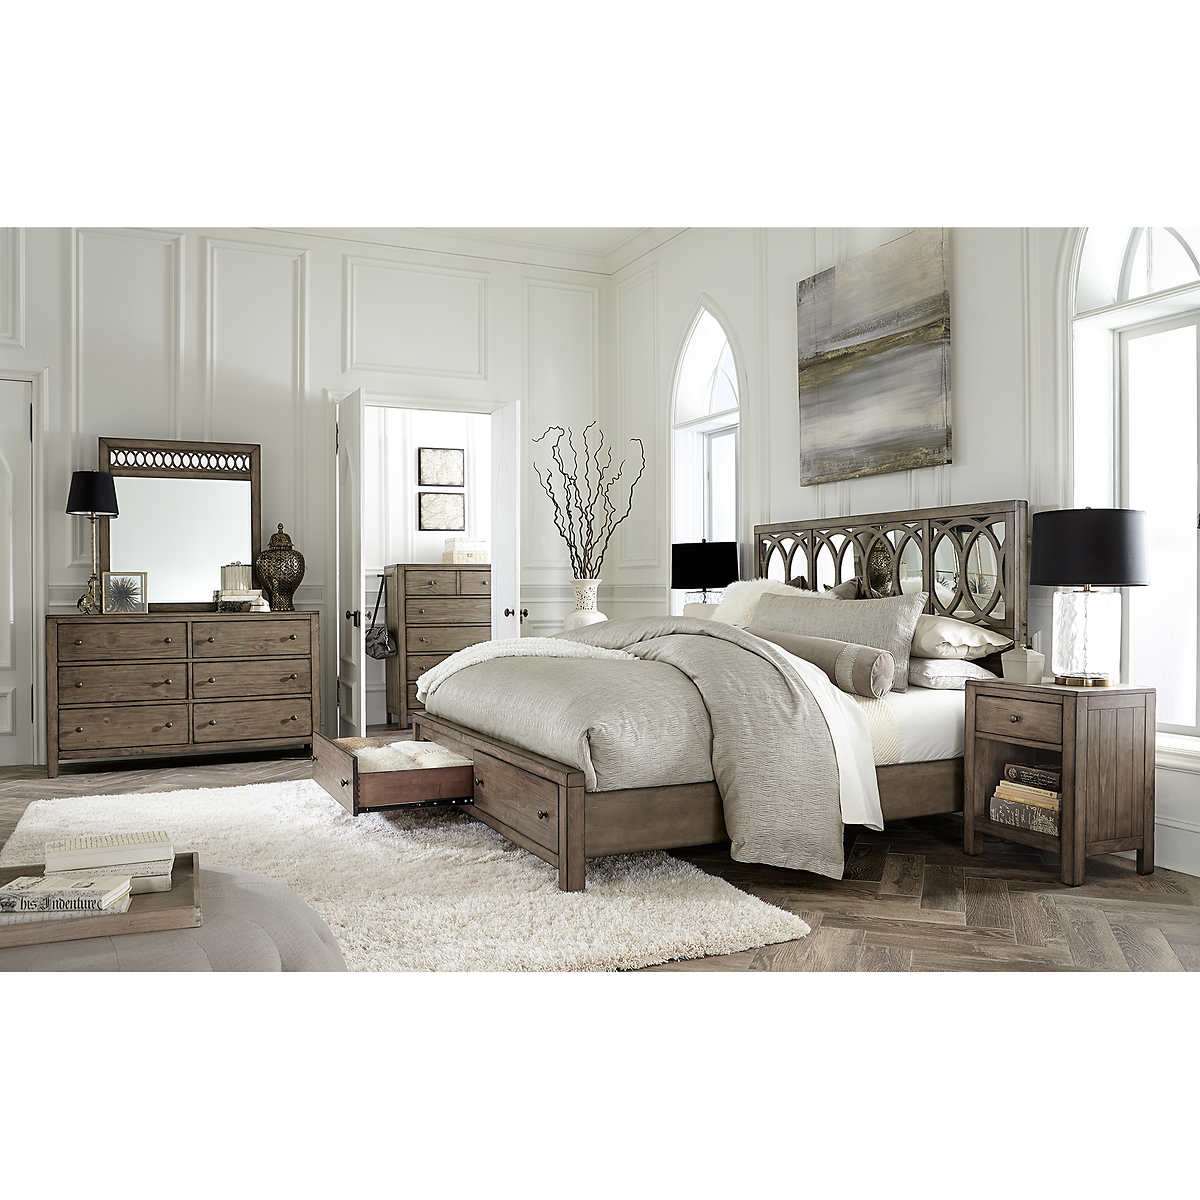 Beverly 6 piece King Mirrored Bedroom Set